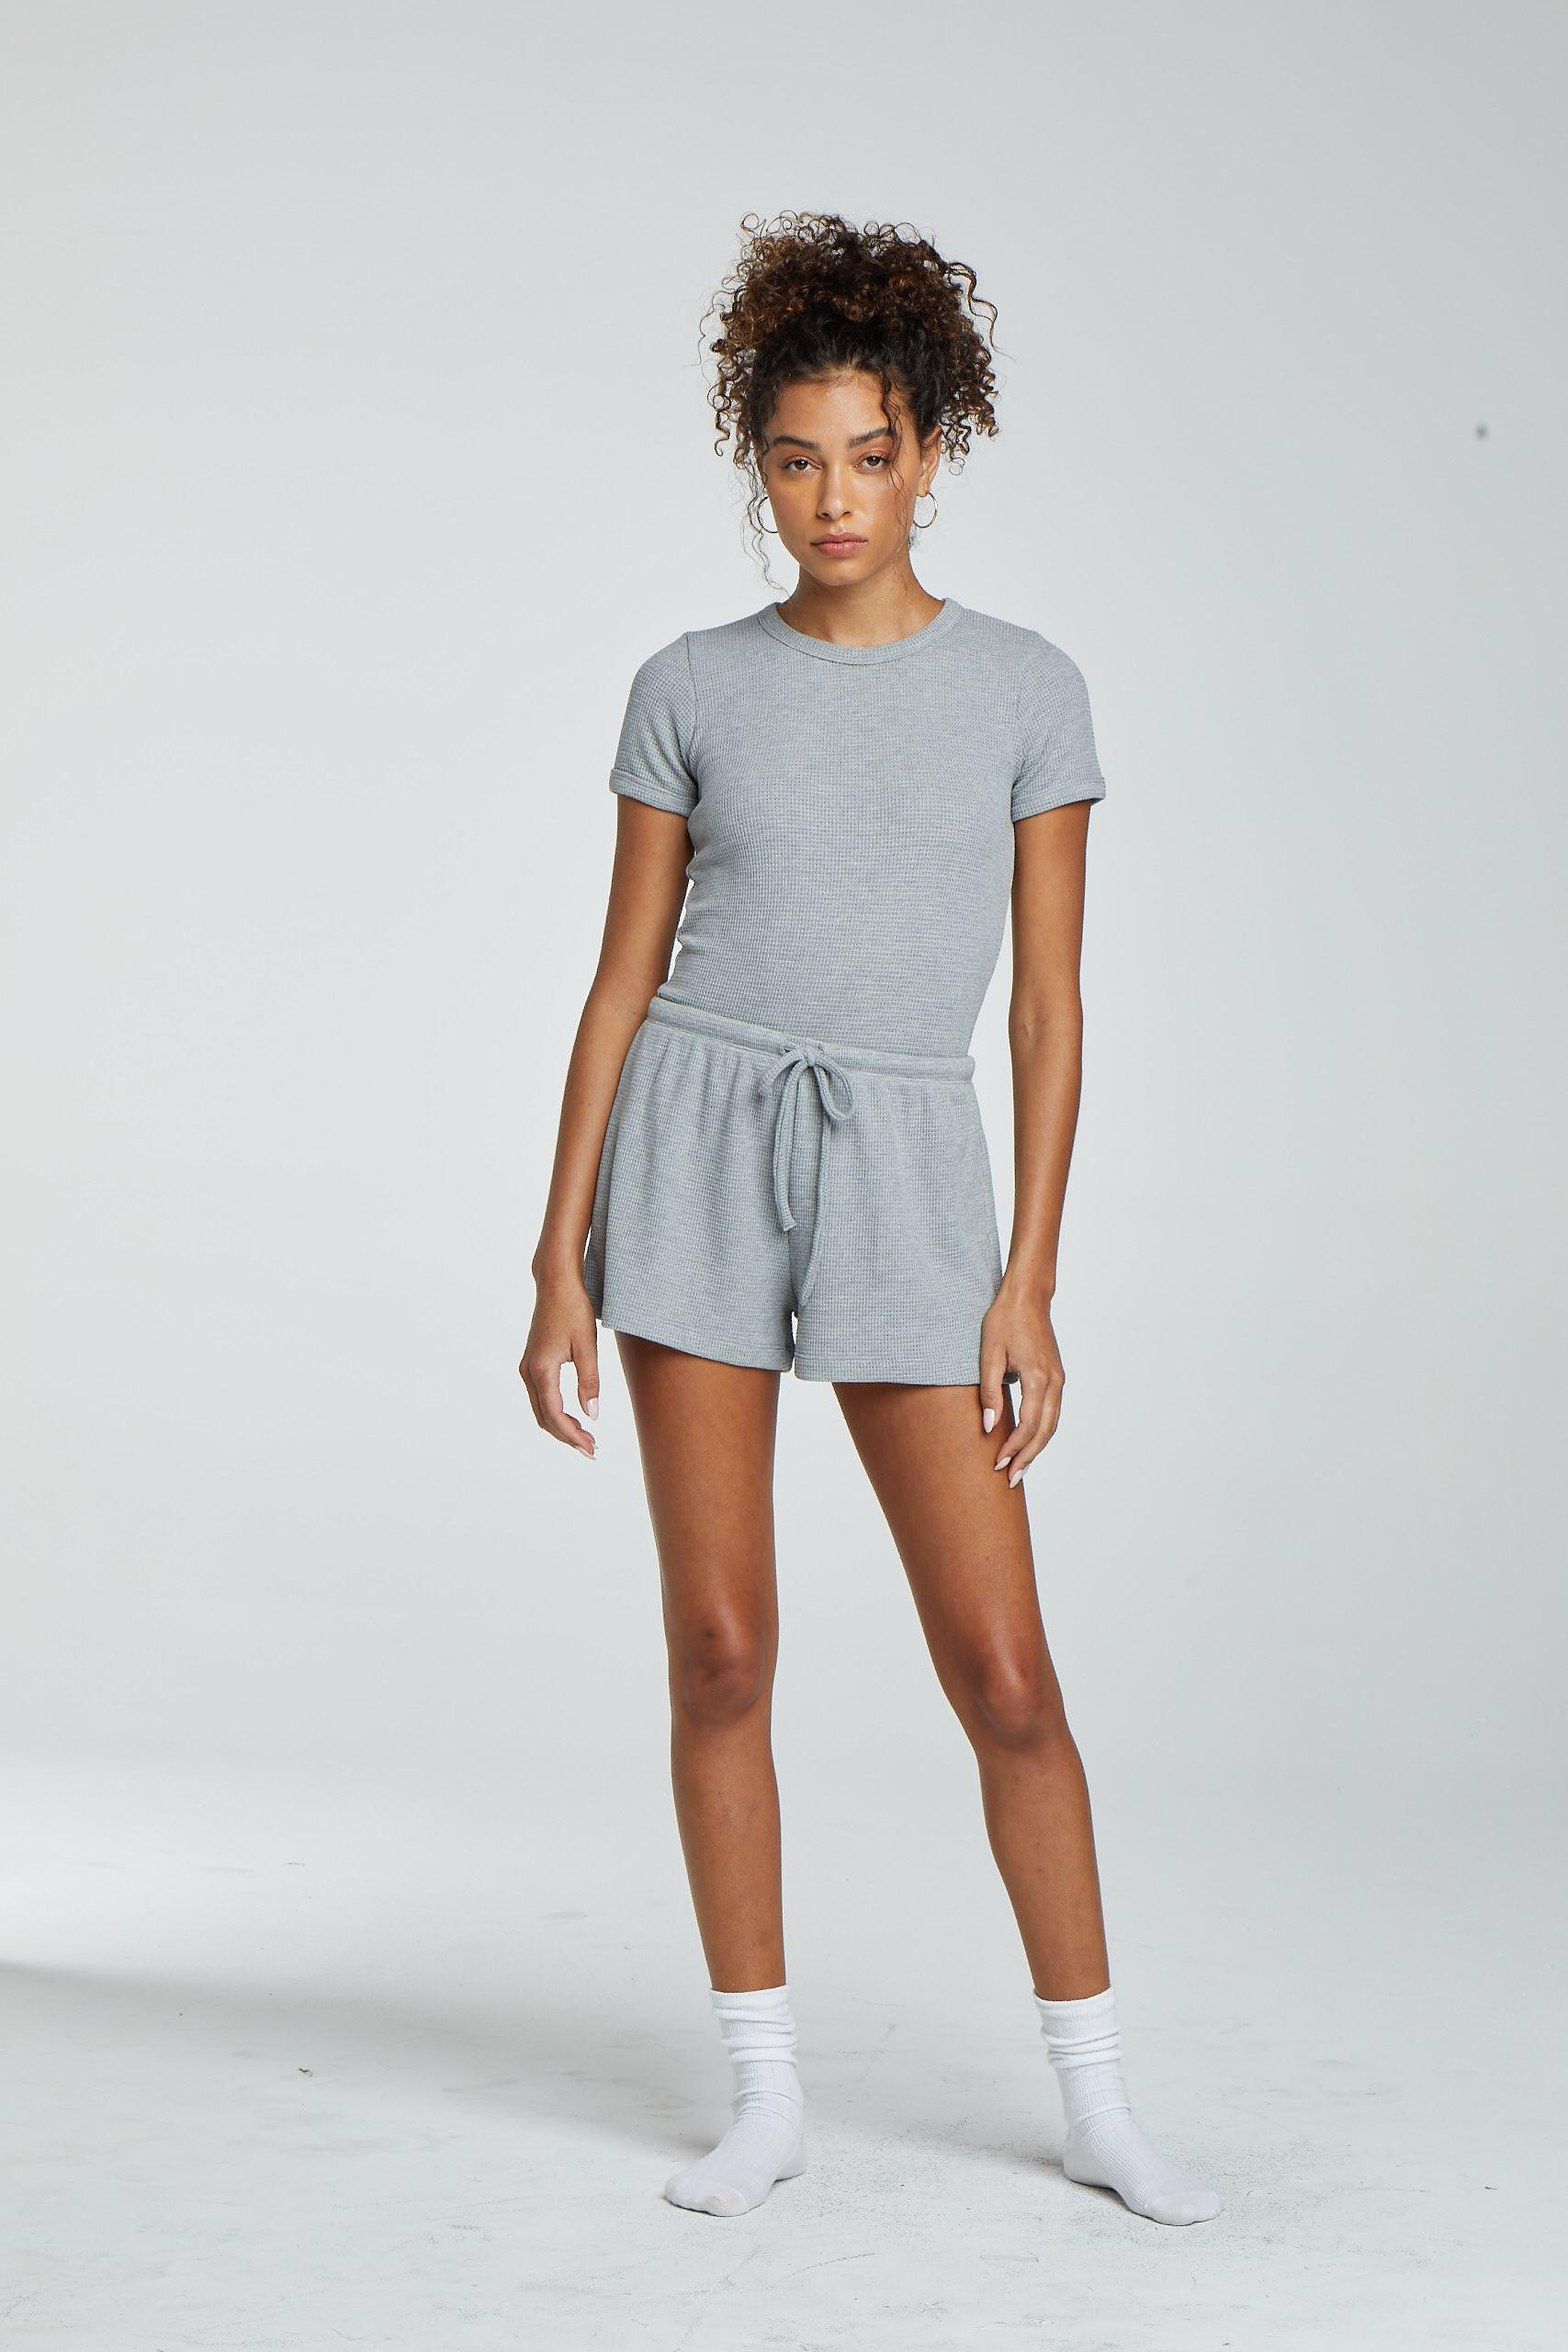 Willow Waffle Slim Fit Tee - Light Heather Grey 1